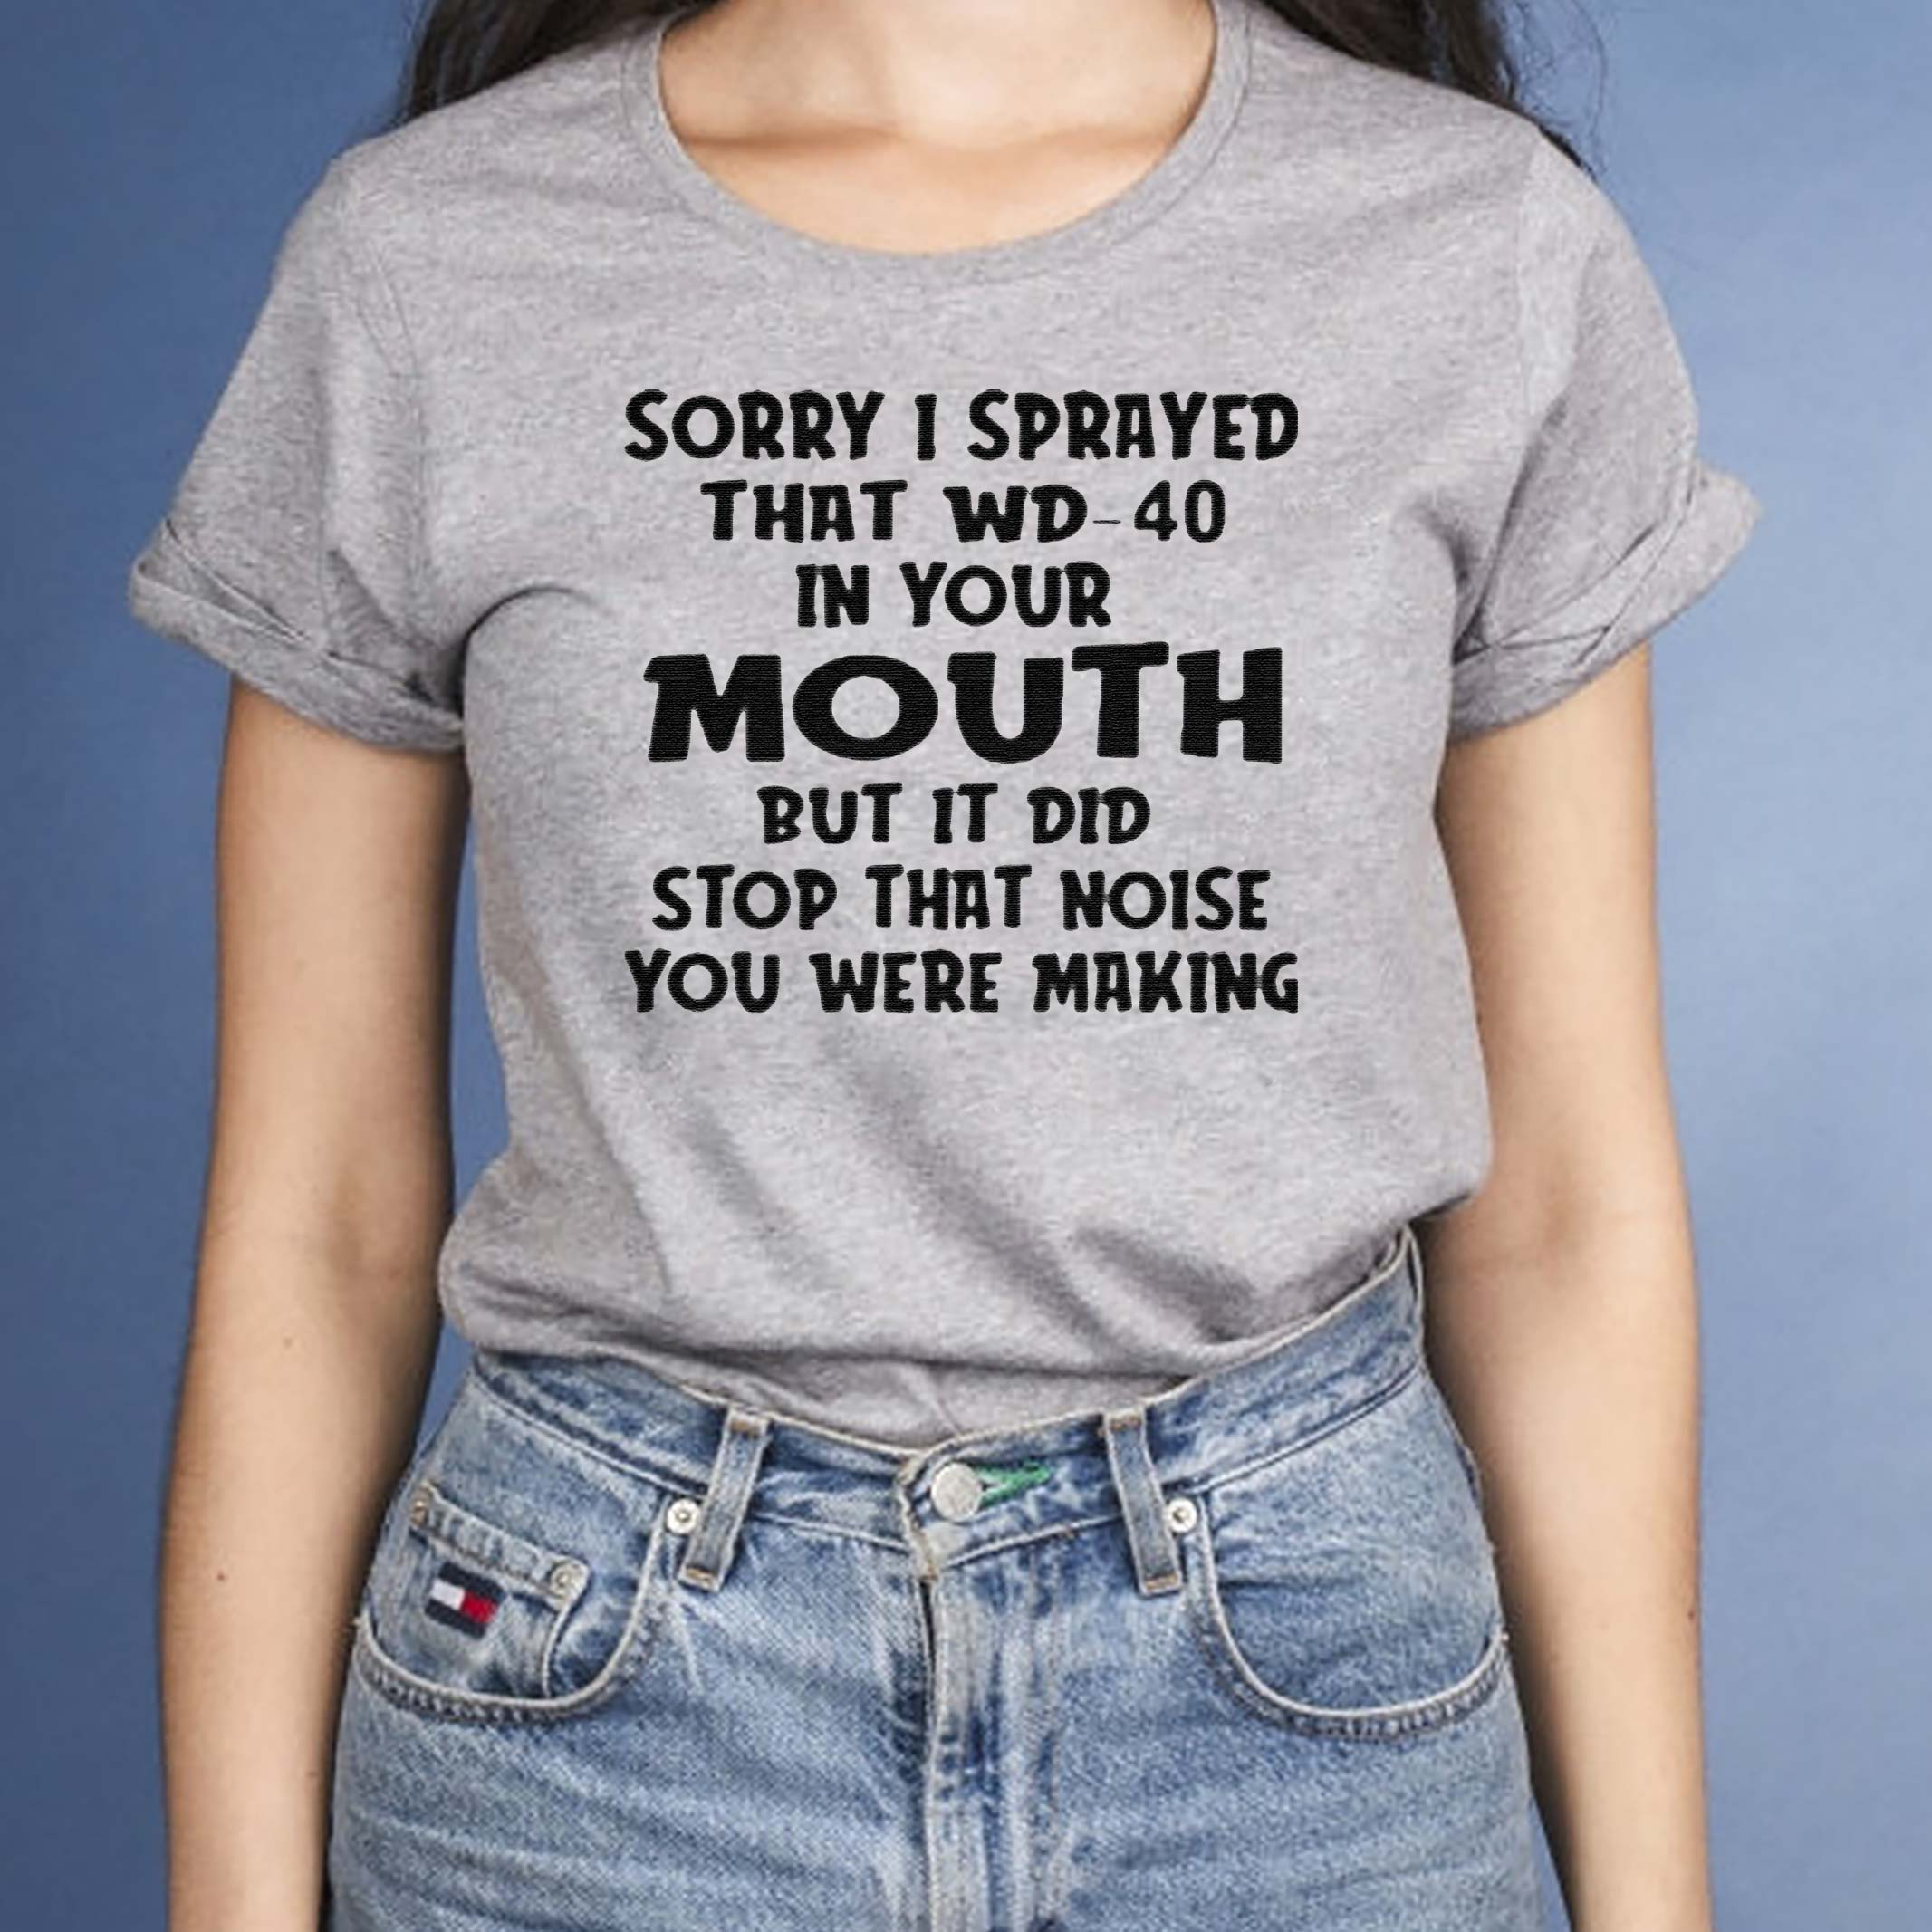 Sorry-I-sprayed-that-Wd-40-in-your-Mouth-but-it-did-stop-that-noise-You-were-making-shirt